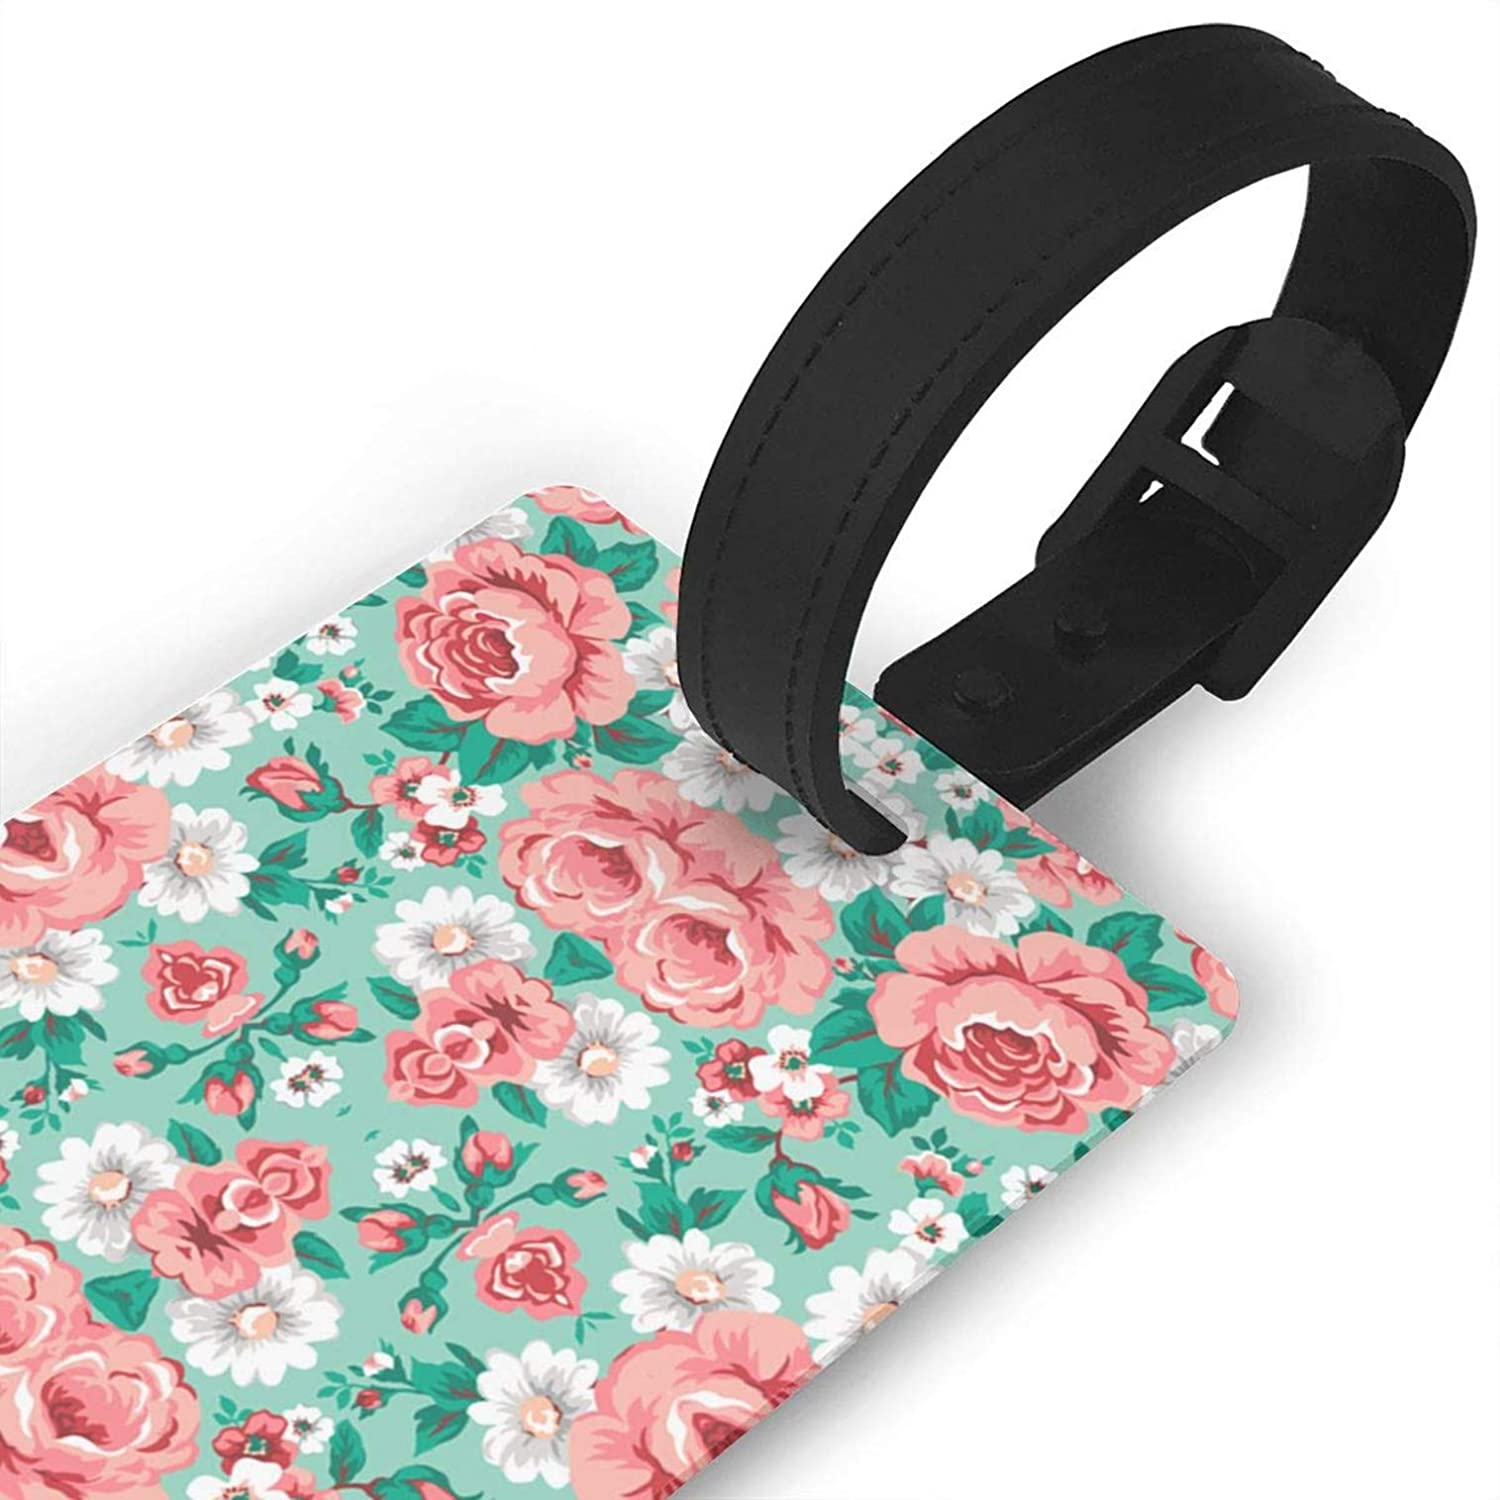 Floral with Roses in Mint,Travel ID Bag Tag for Suitcase,Printed,Flexible PVC,Travel ID Identification for Bags Consignment Card